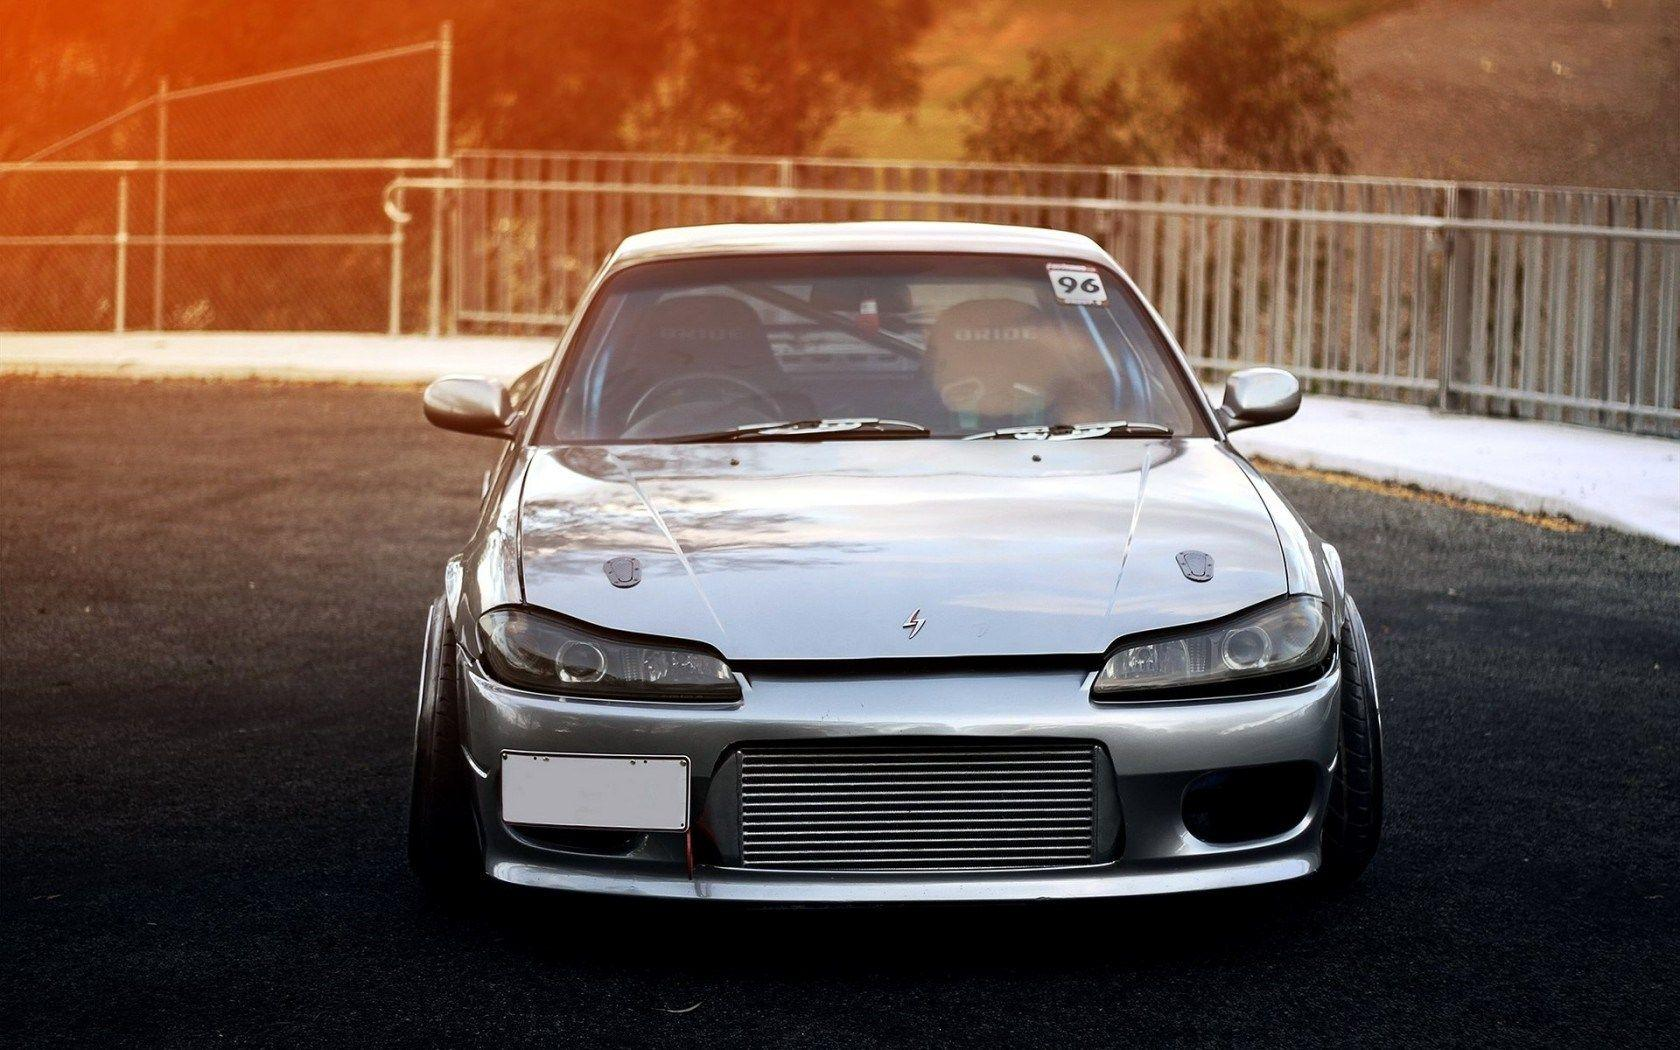 Nissan Silvia S15 Wallpapers and Backgrounds